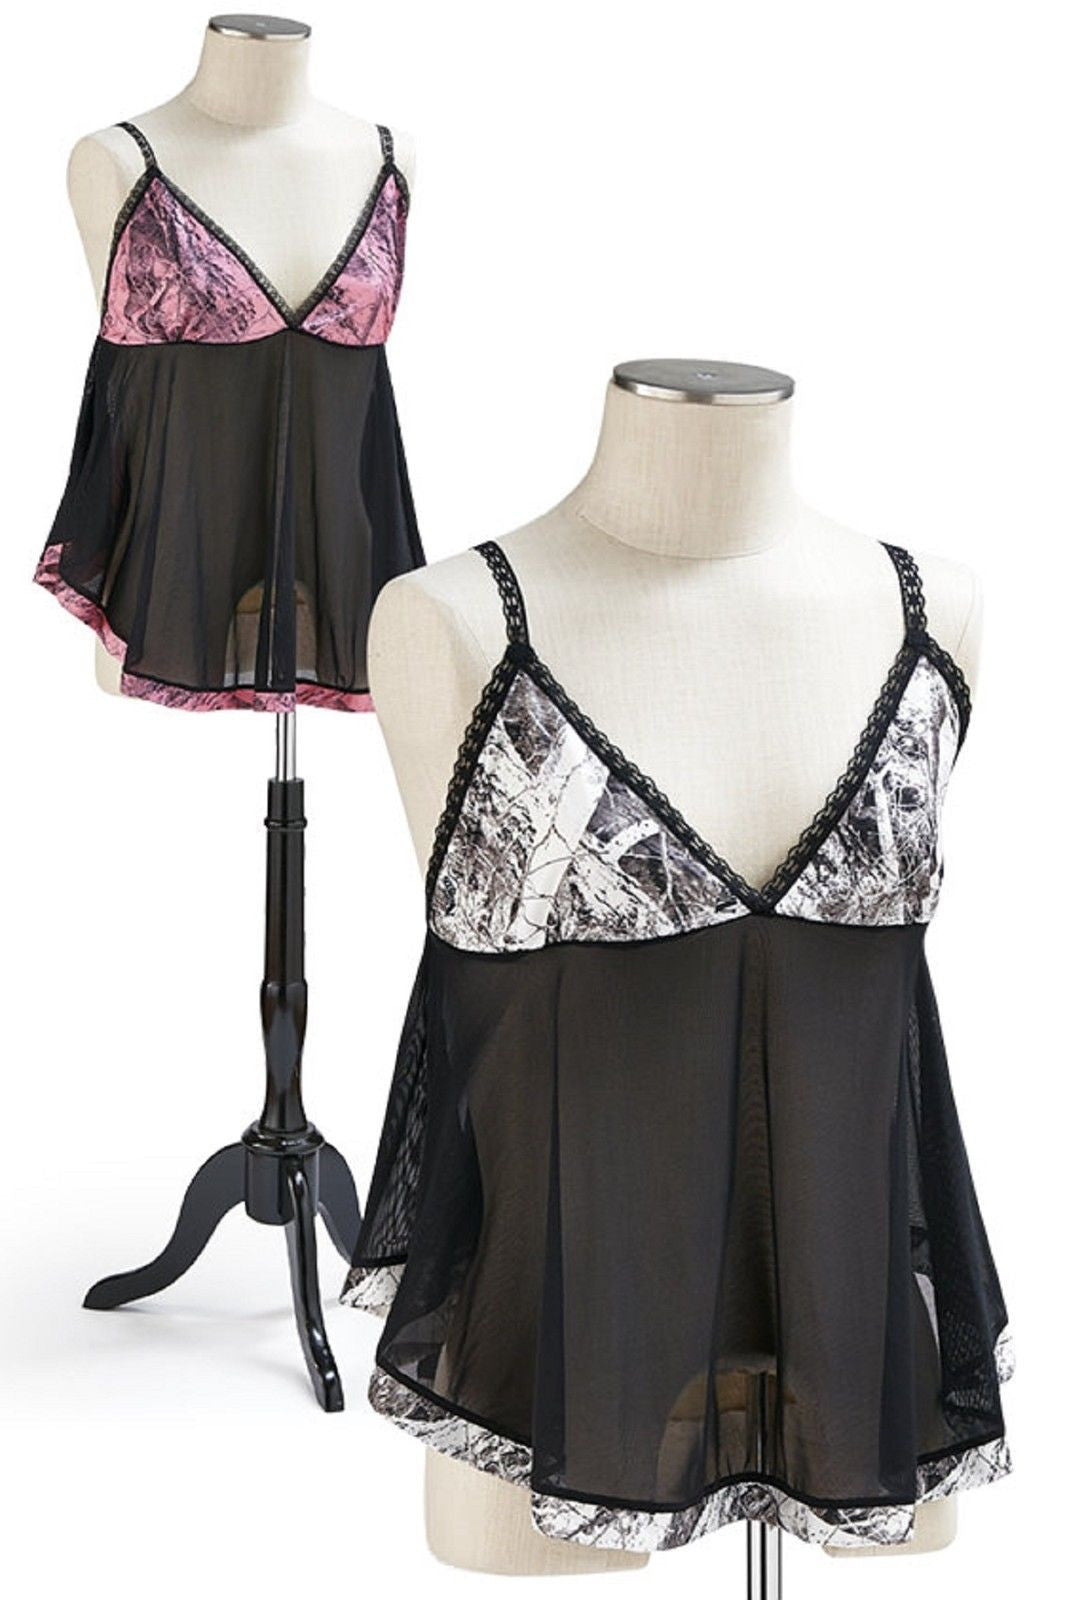 06195995f4 Naked North Pink or Snow Camo Lingerie Mesh Dress   Pantie Baby Doll Set  S-XL.